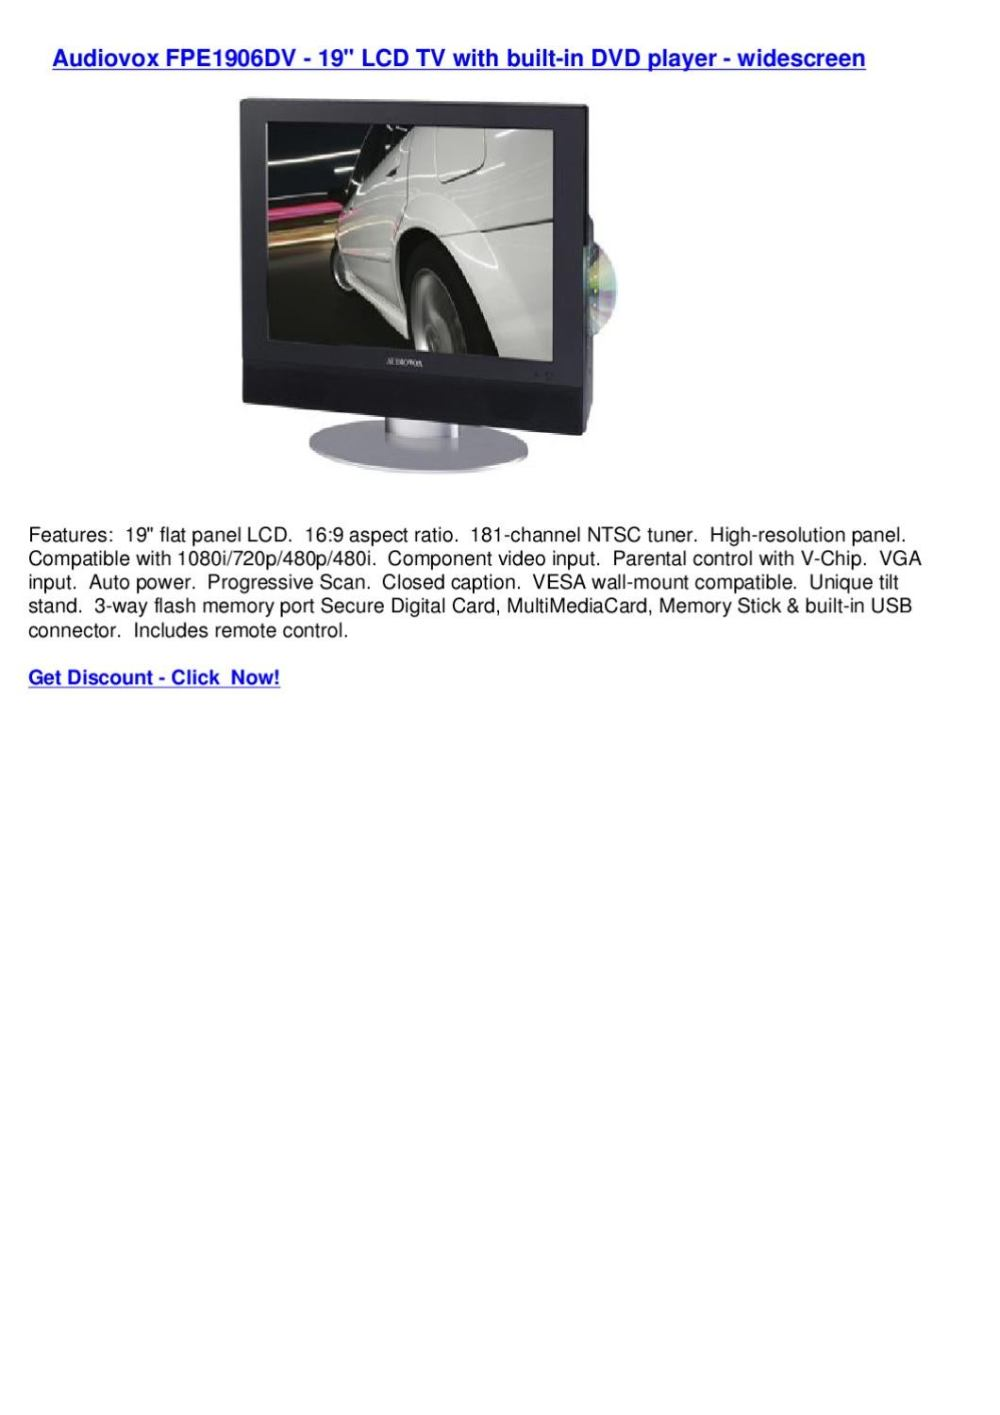 medium resolution of audiovox fpe1906dv 19 lcd tv with built in dvd player widescreen